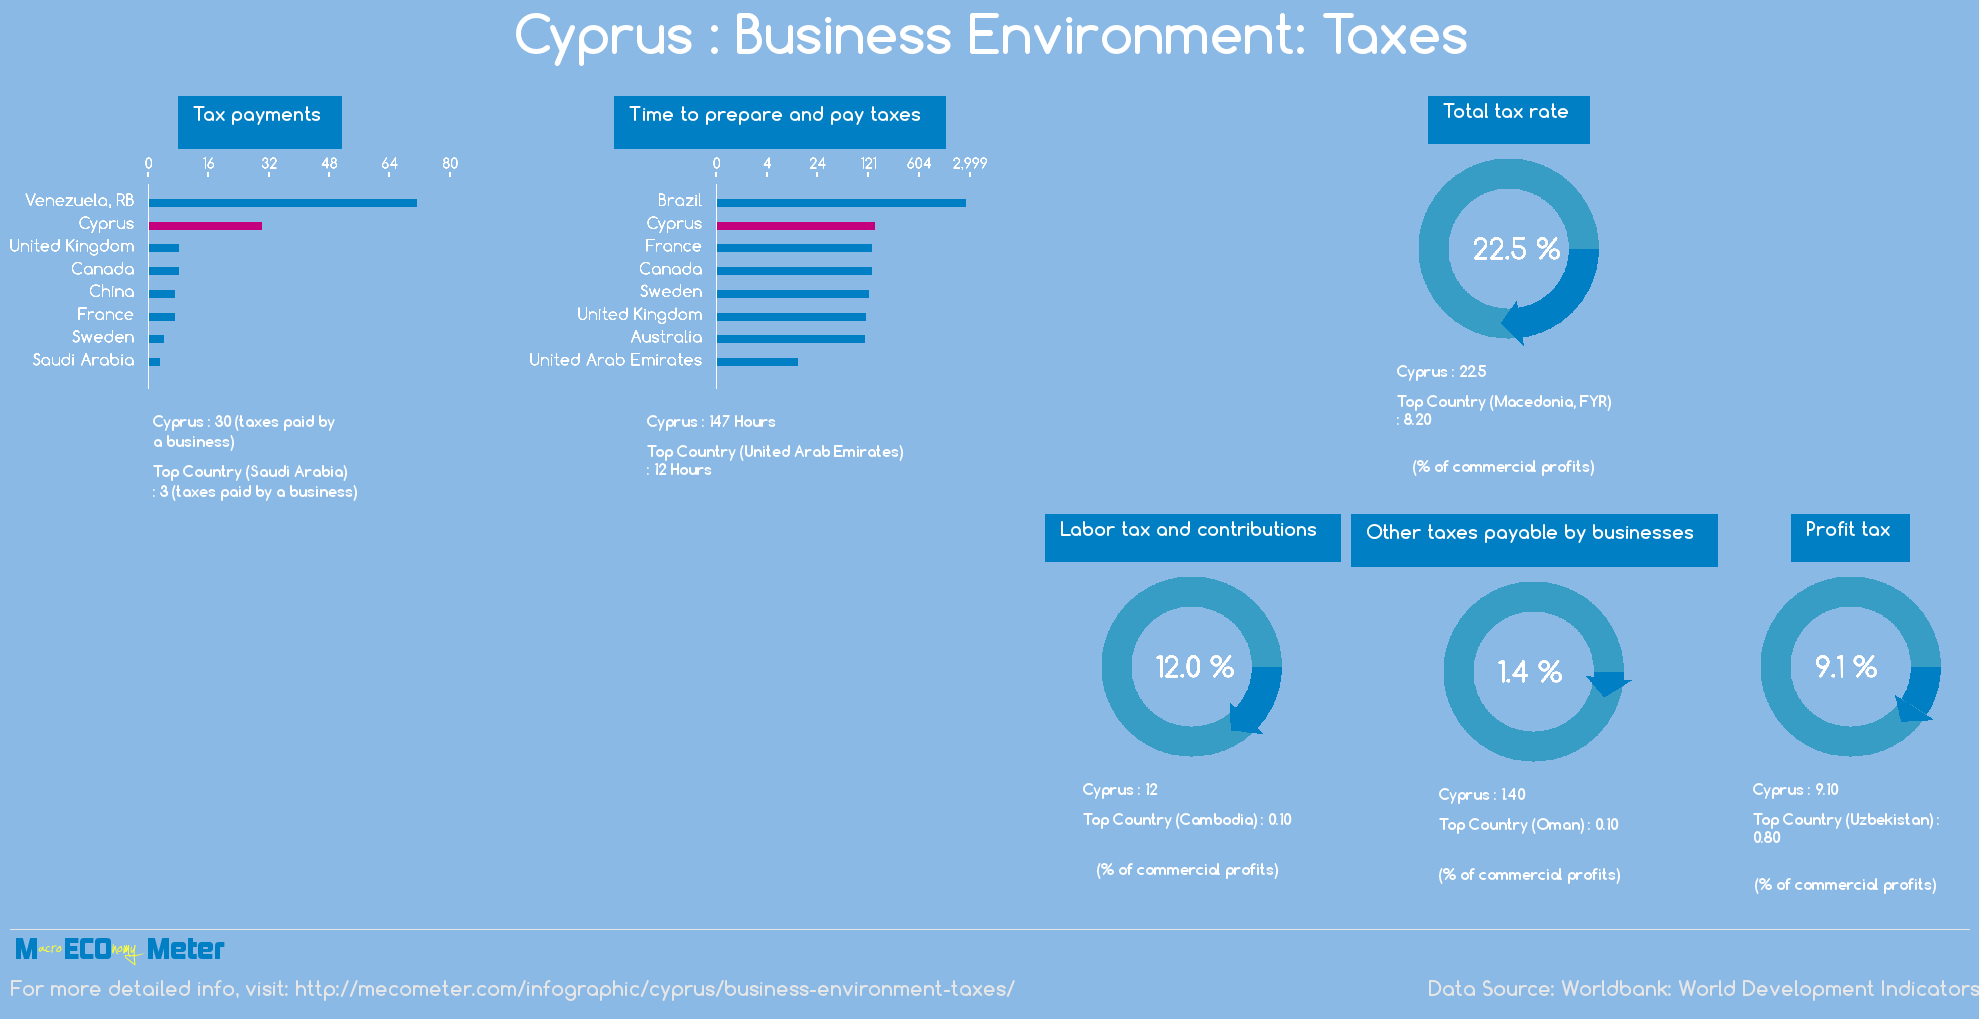 Cyprus : Business Environment: Taxes